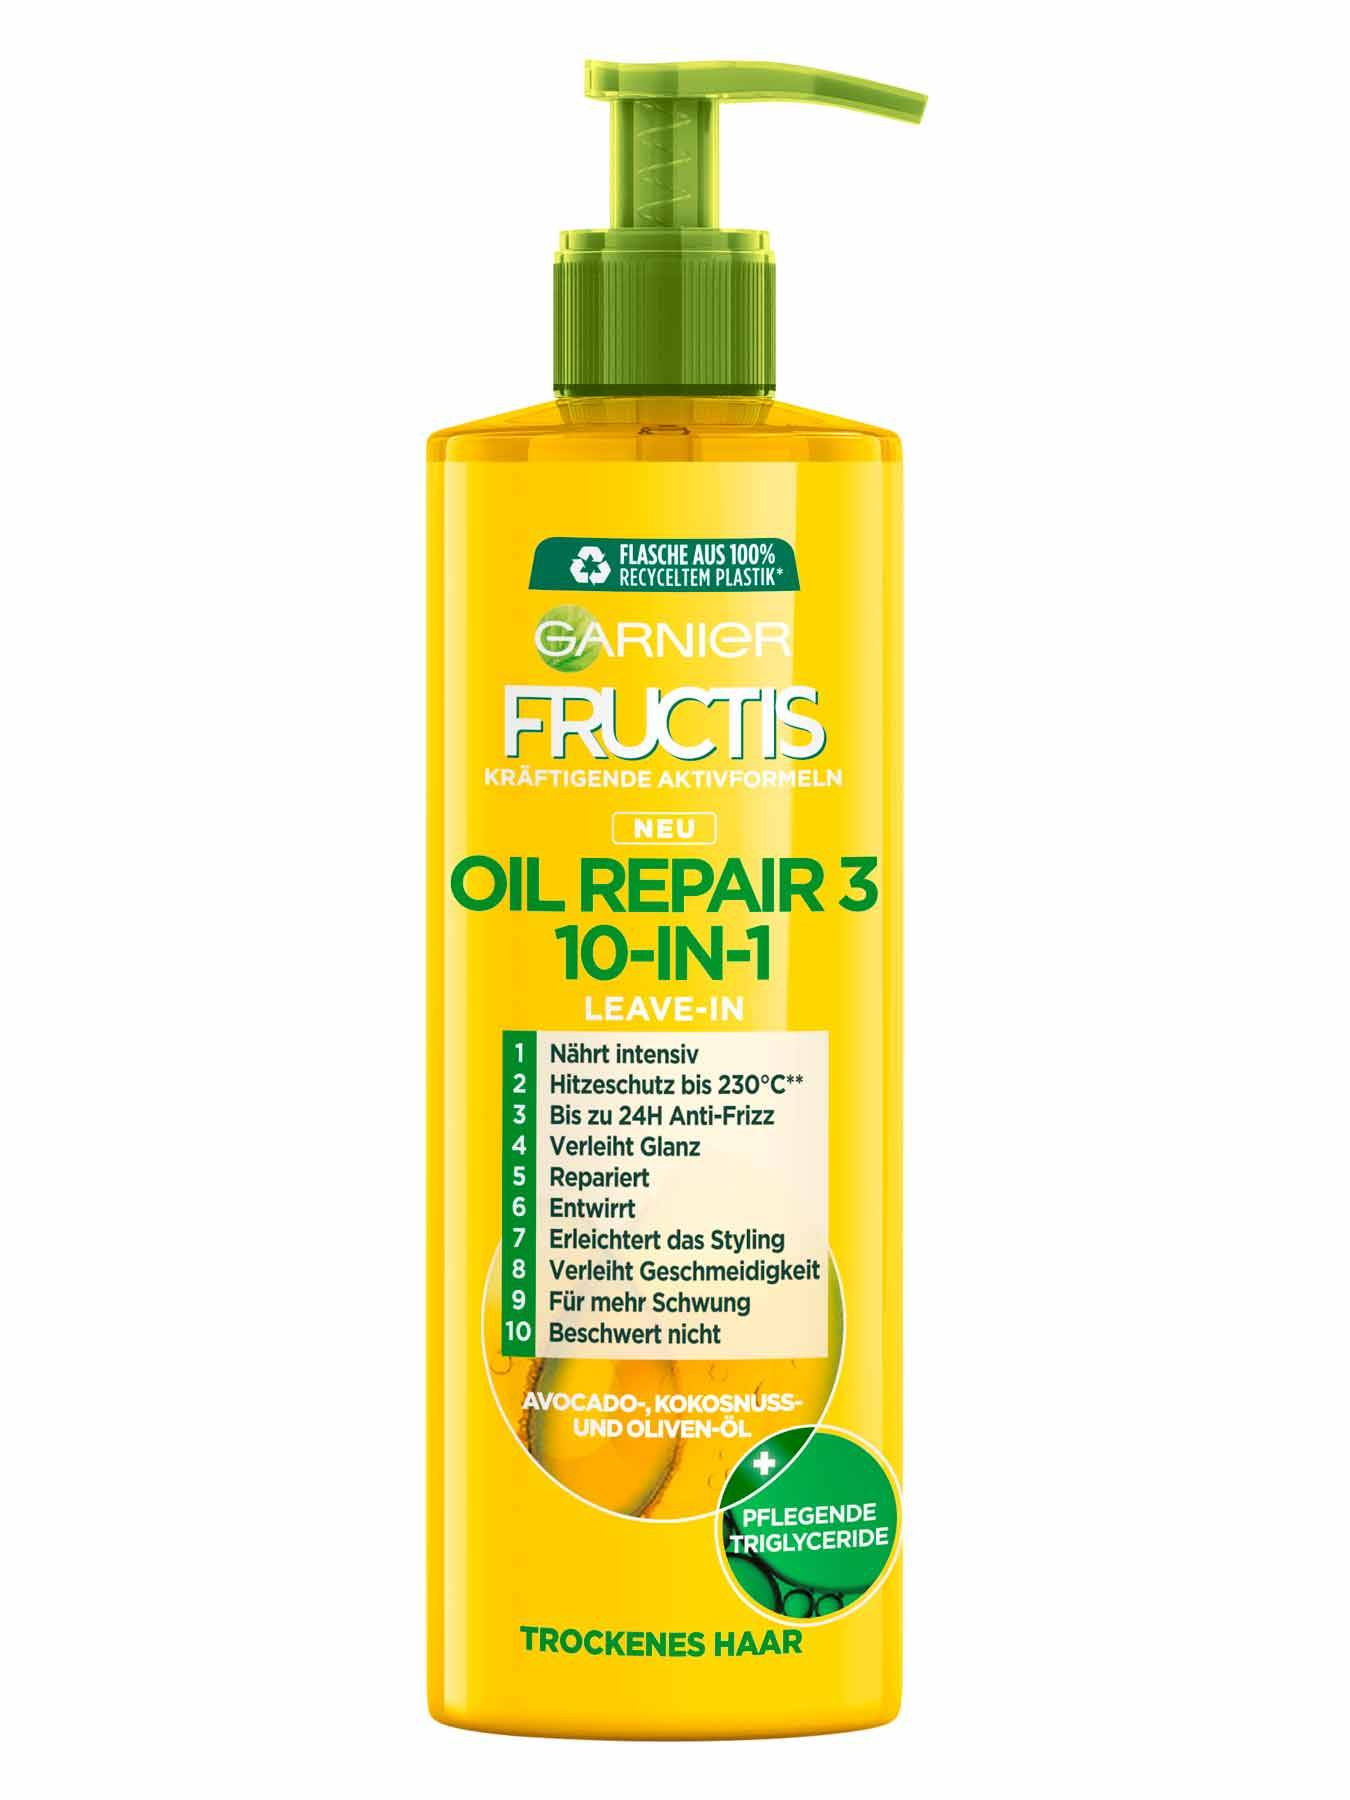 Oil Repair 3 10-in-1 Leave-In Produktbild